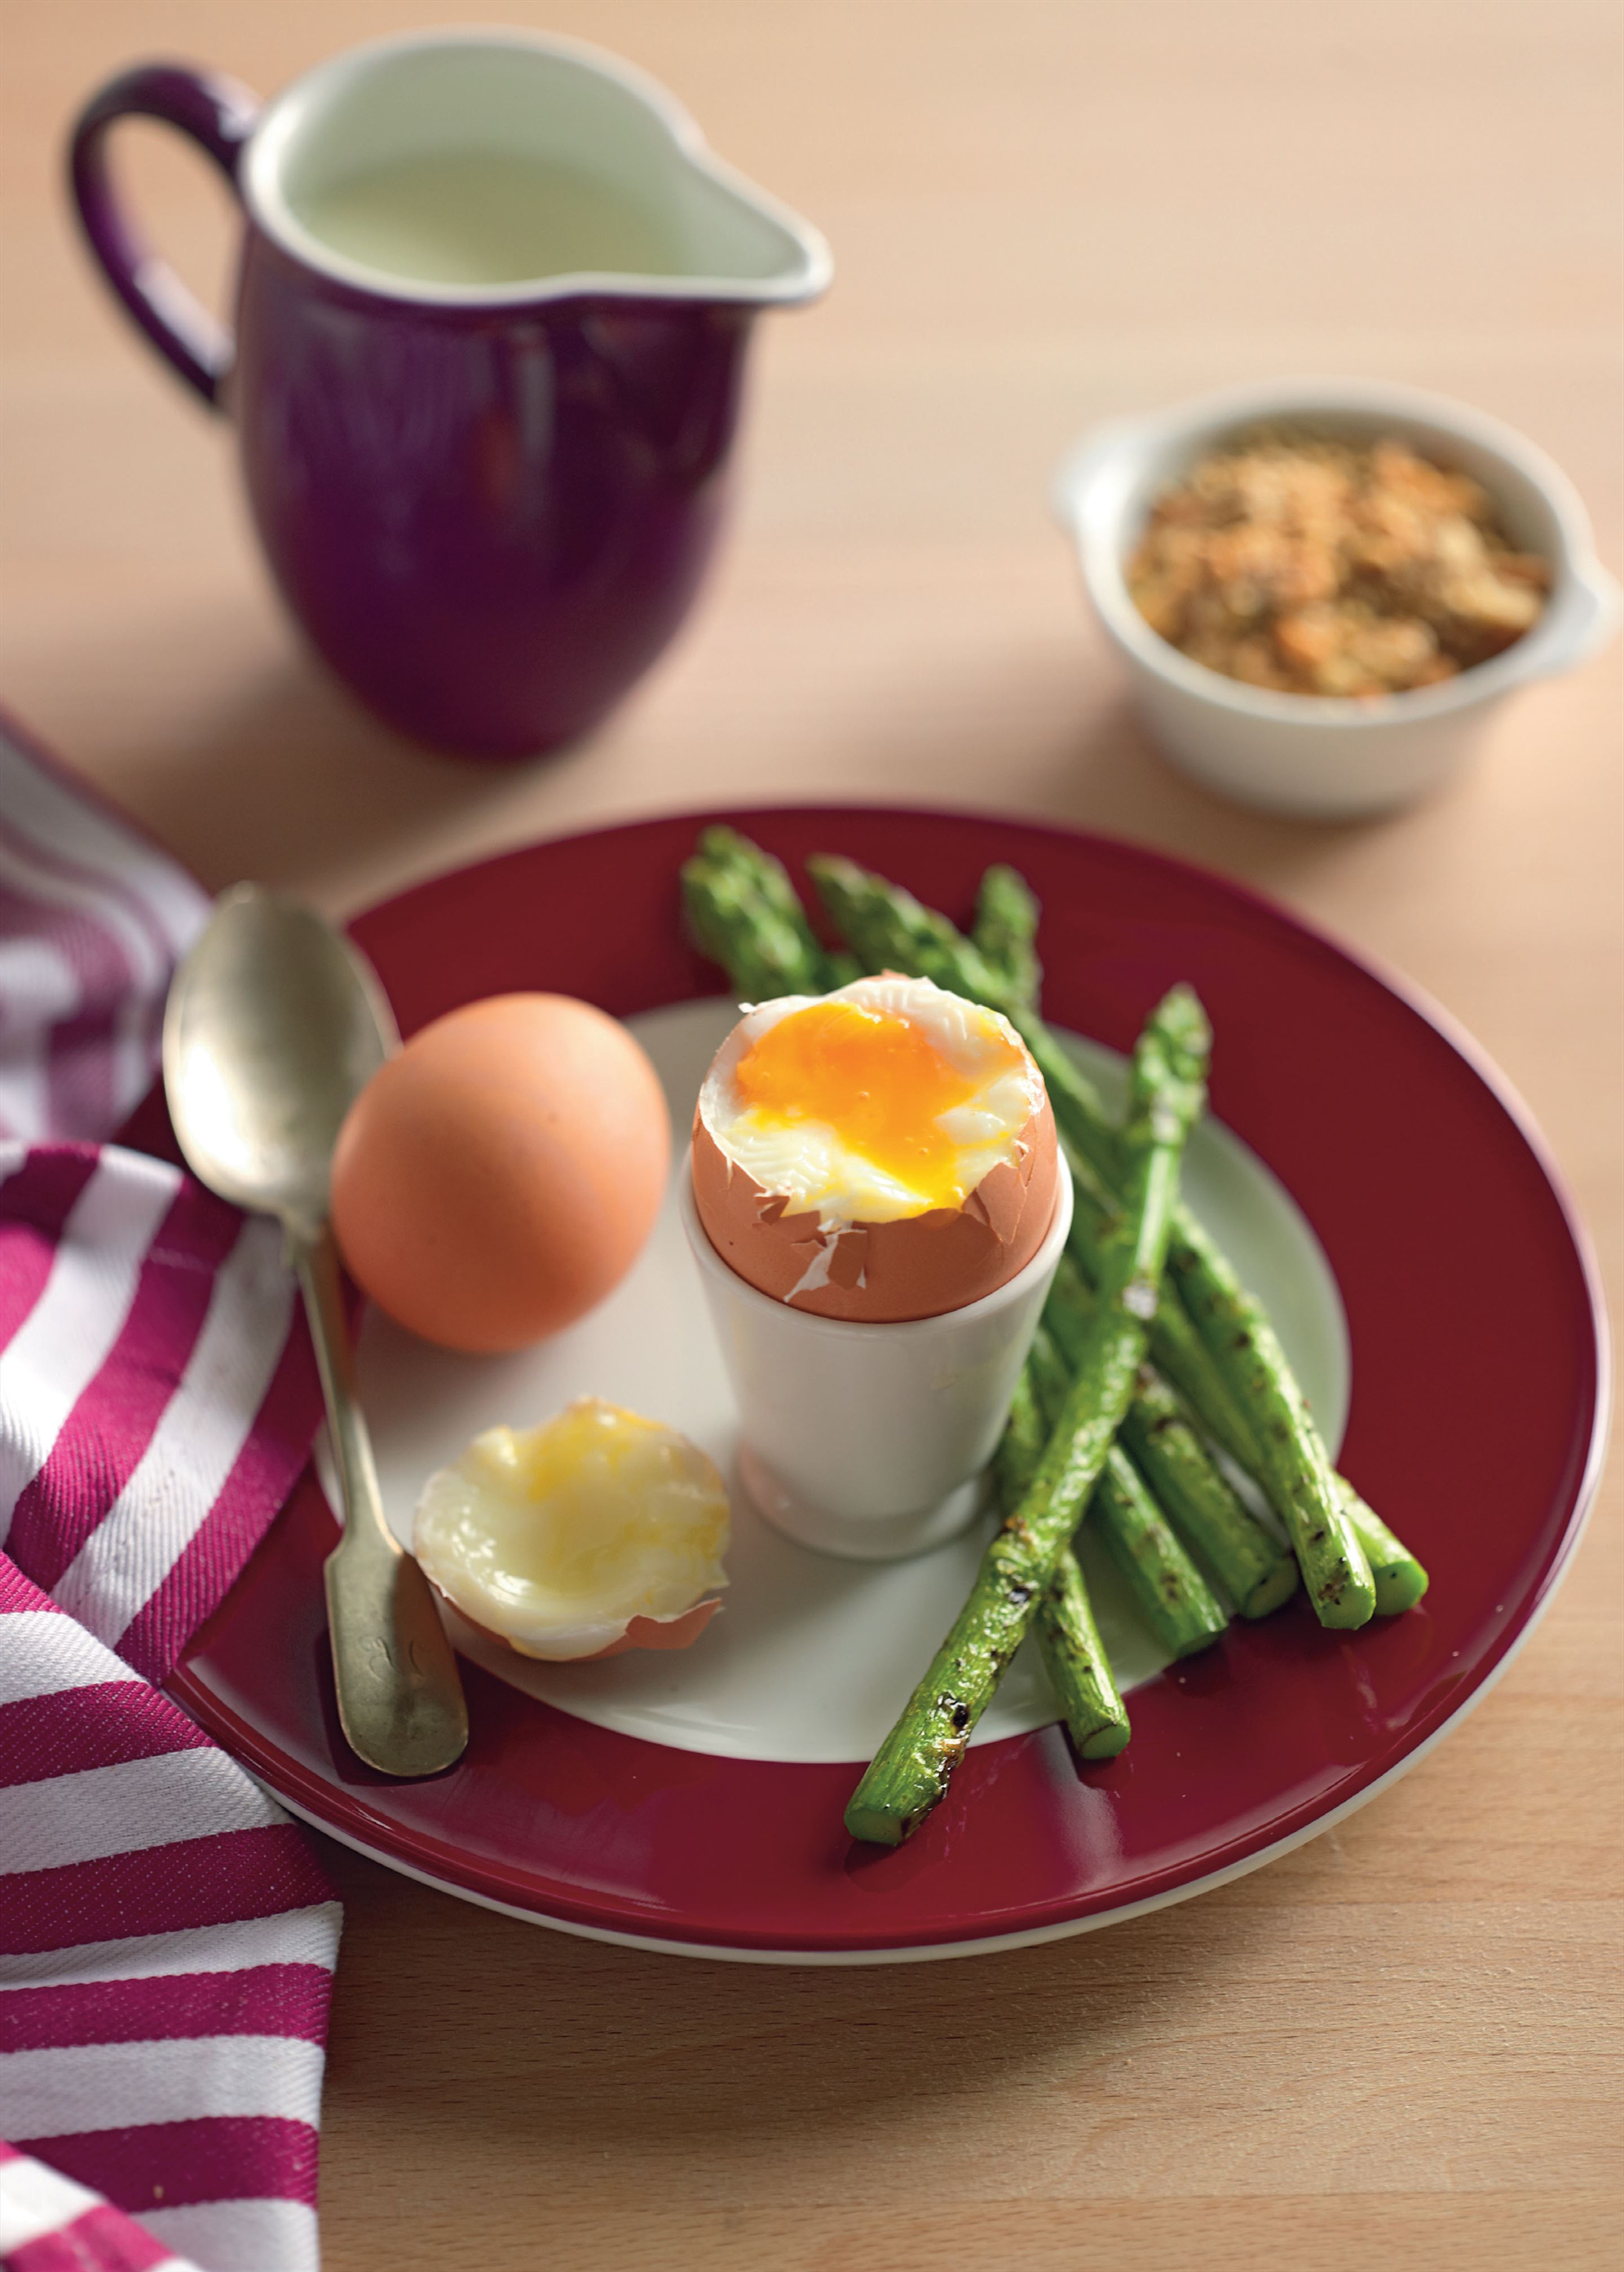 Soft-boiled eggs with grilled asparagus and dukkah